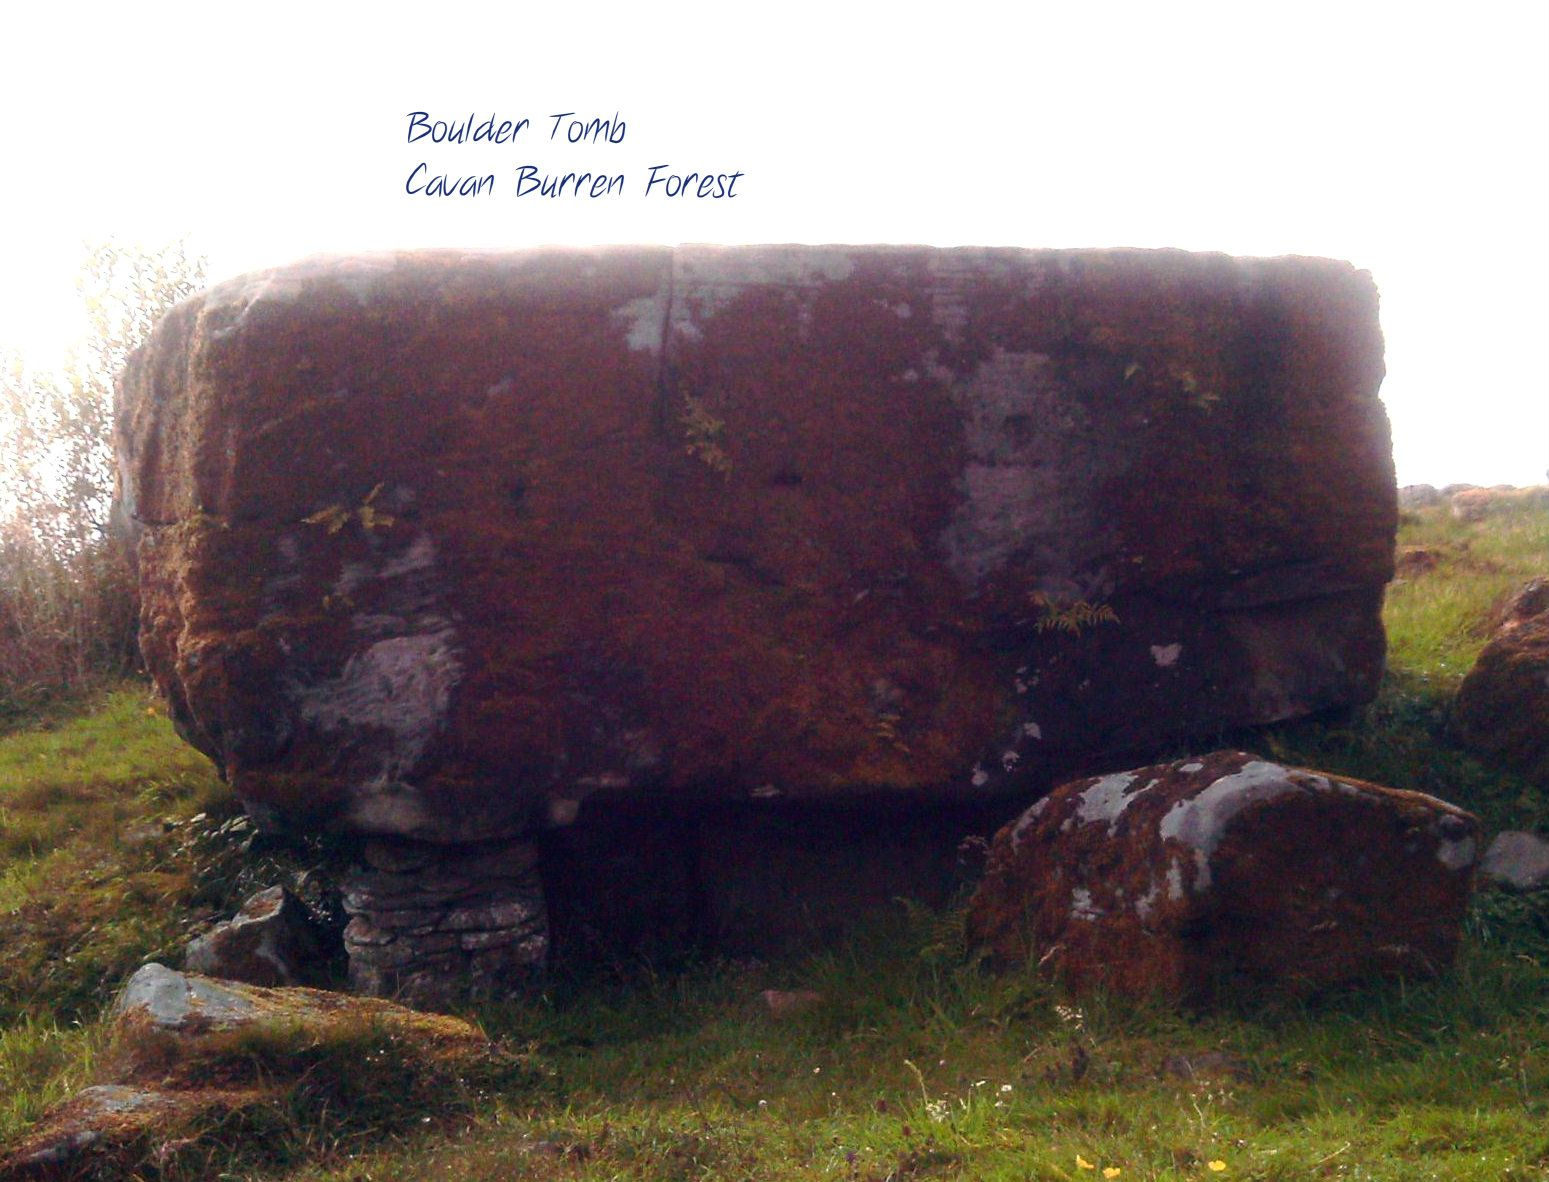 The Cavan Burren Forest has dolmens, wedge and boulder tombs, hut sites and the magical presence of ancient ancestors.  The last resident in the 1960s told a local storyteller that he always felt their watchful presence.